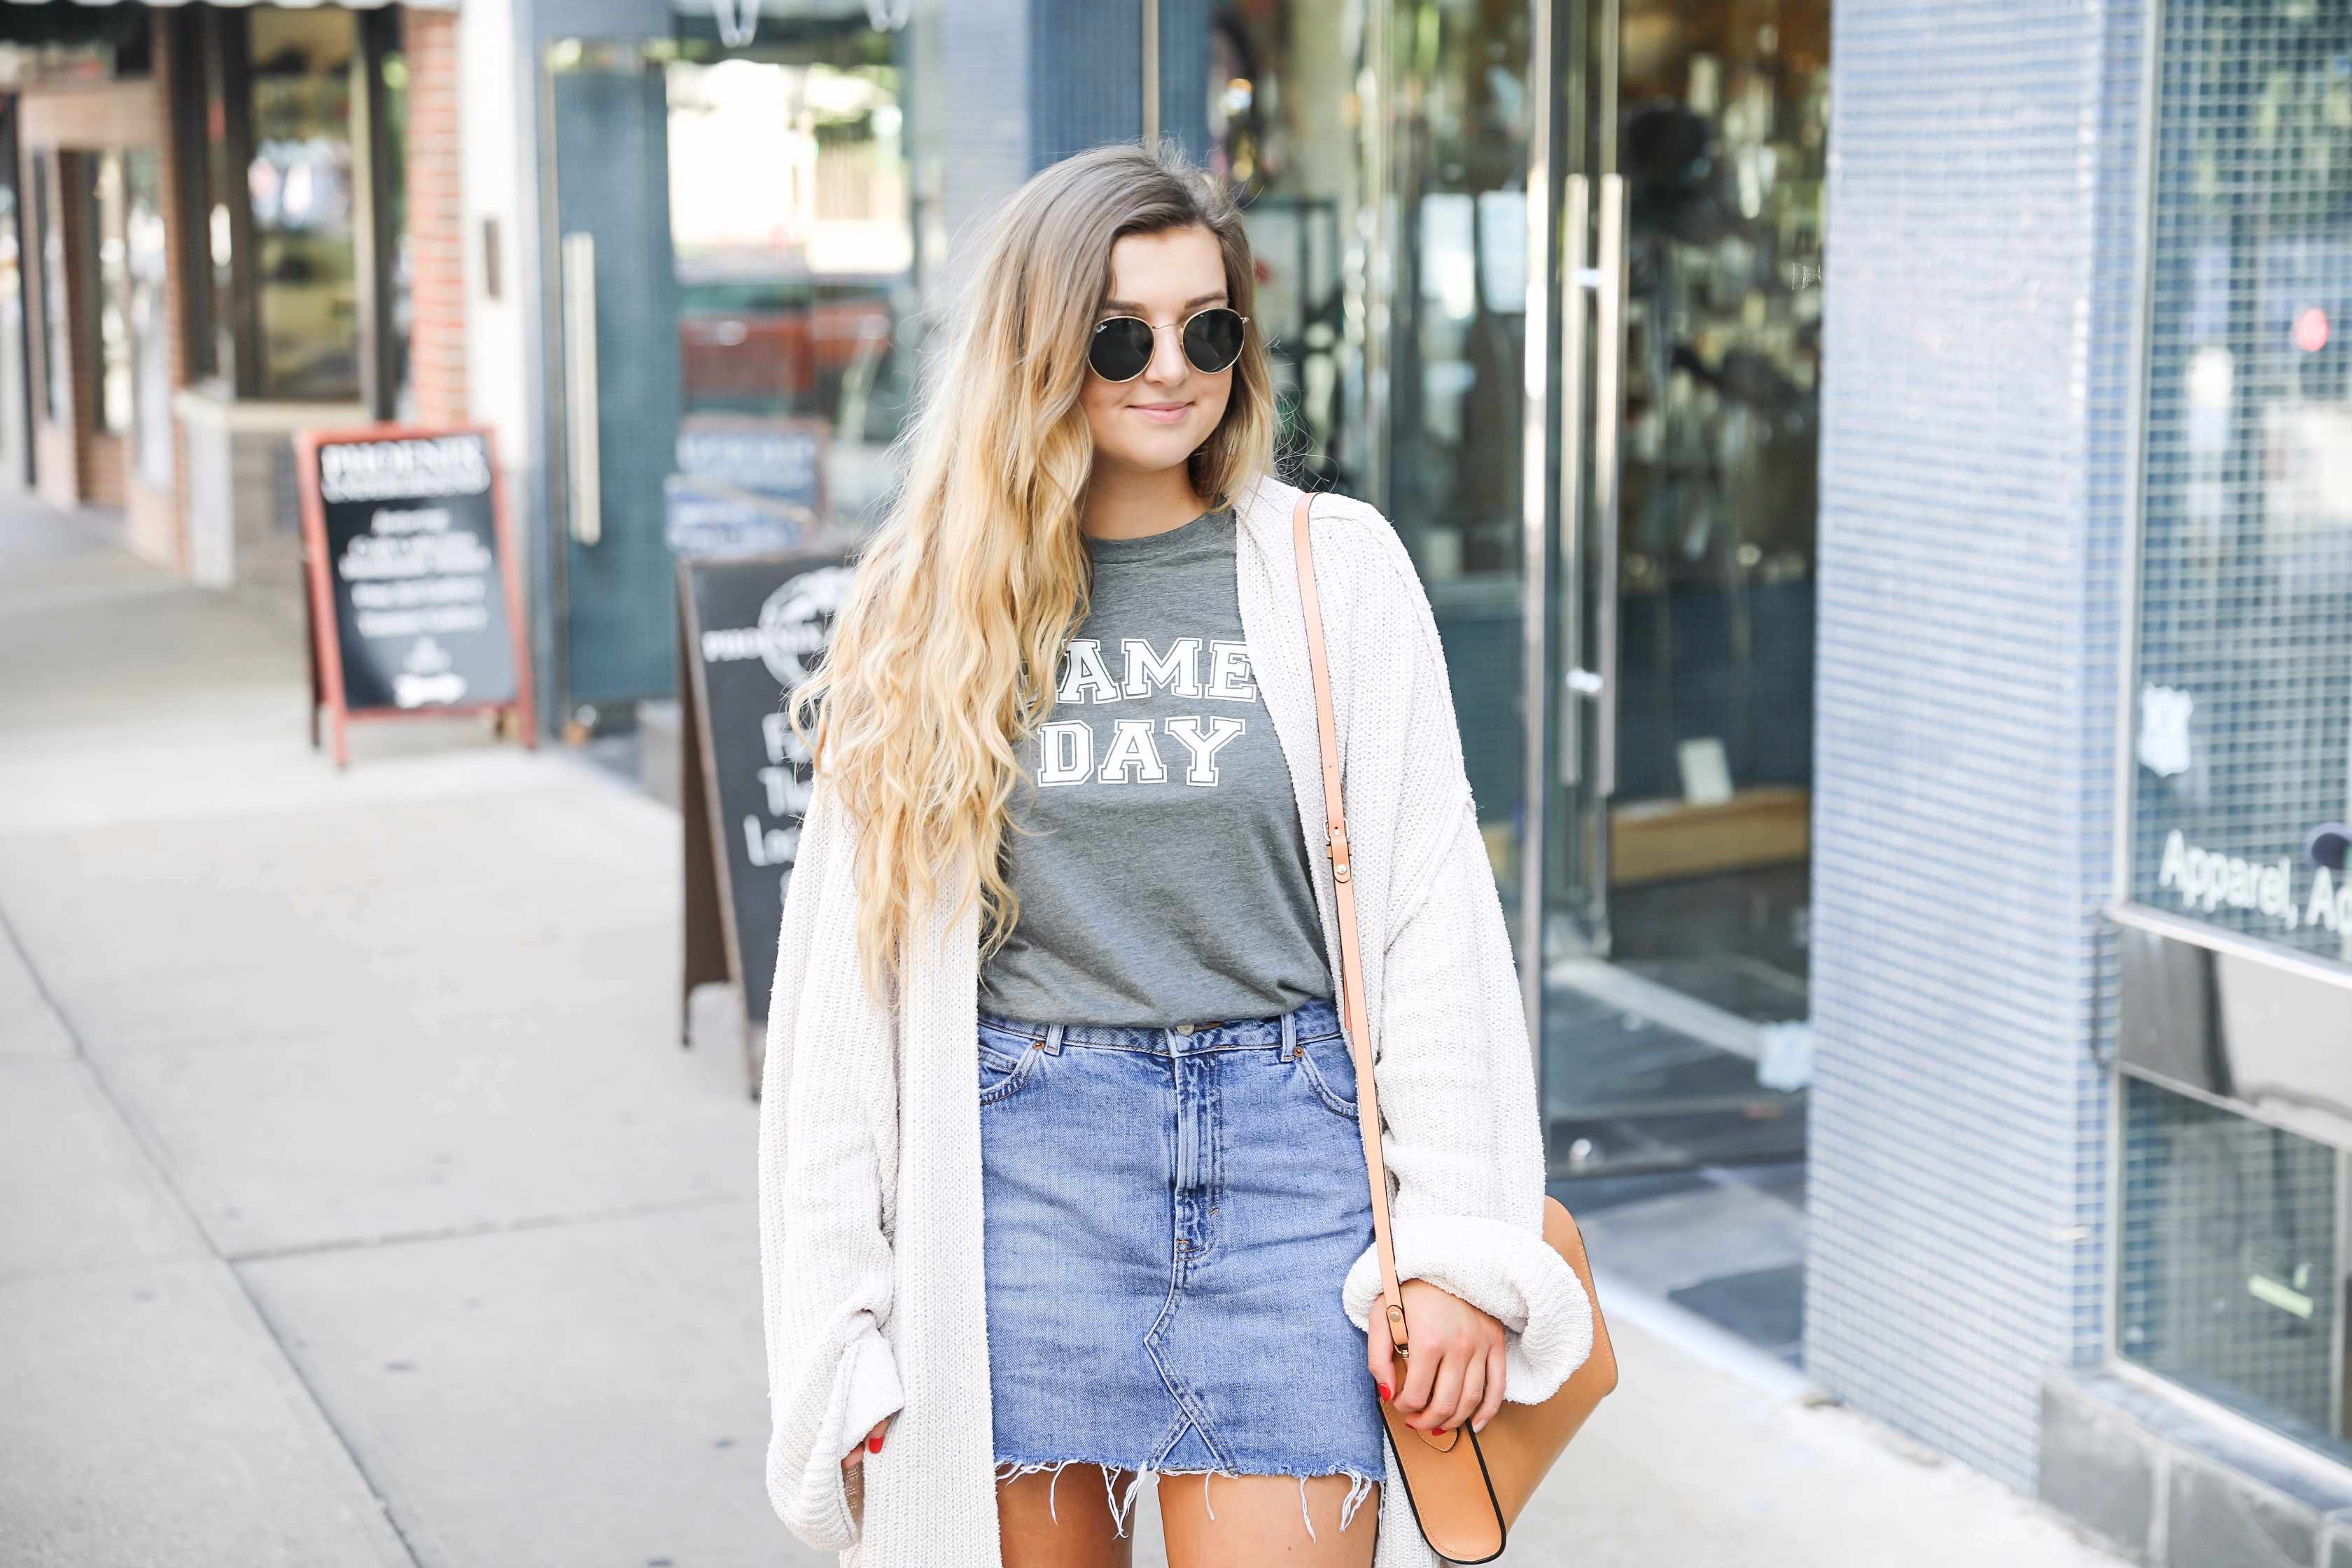 College game day outfit ideas! Perfect outfits to wear to football games for any school. I love this game day tee with this cute jean skirt! Check out the details on fashion blog daily dose of charm by lauren lindmark